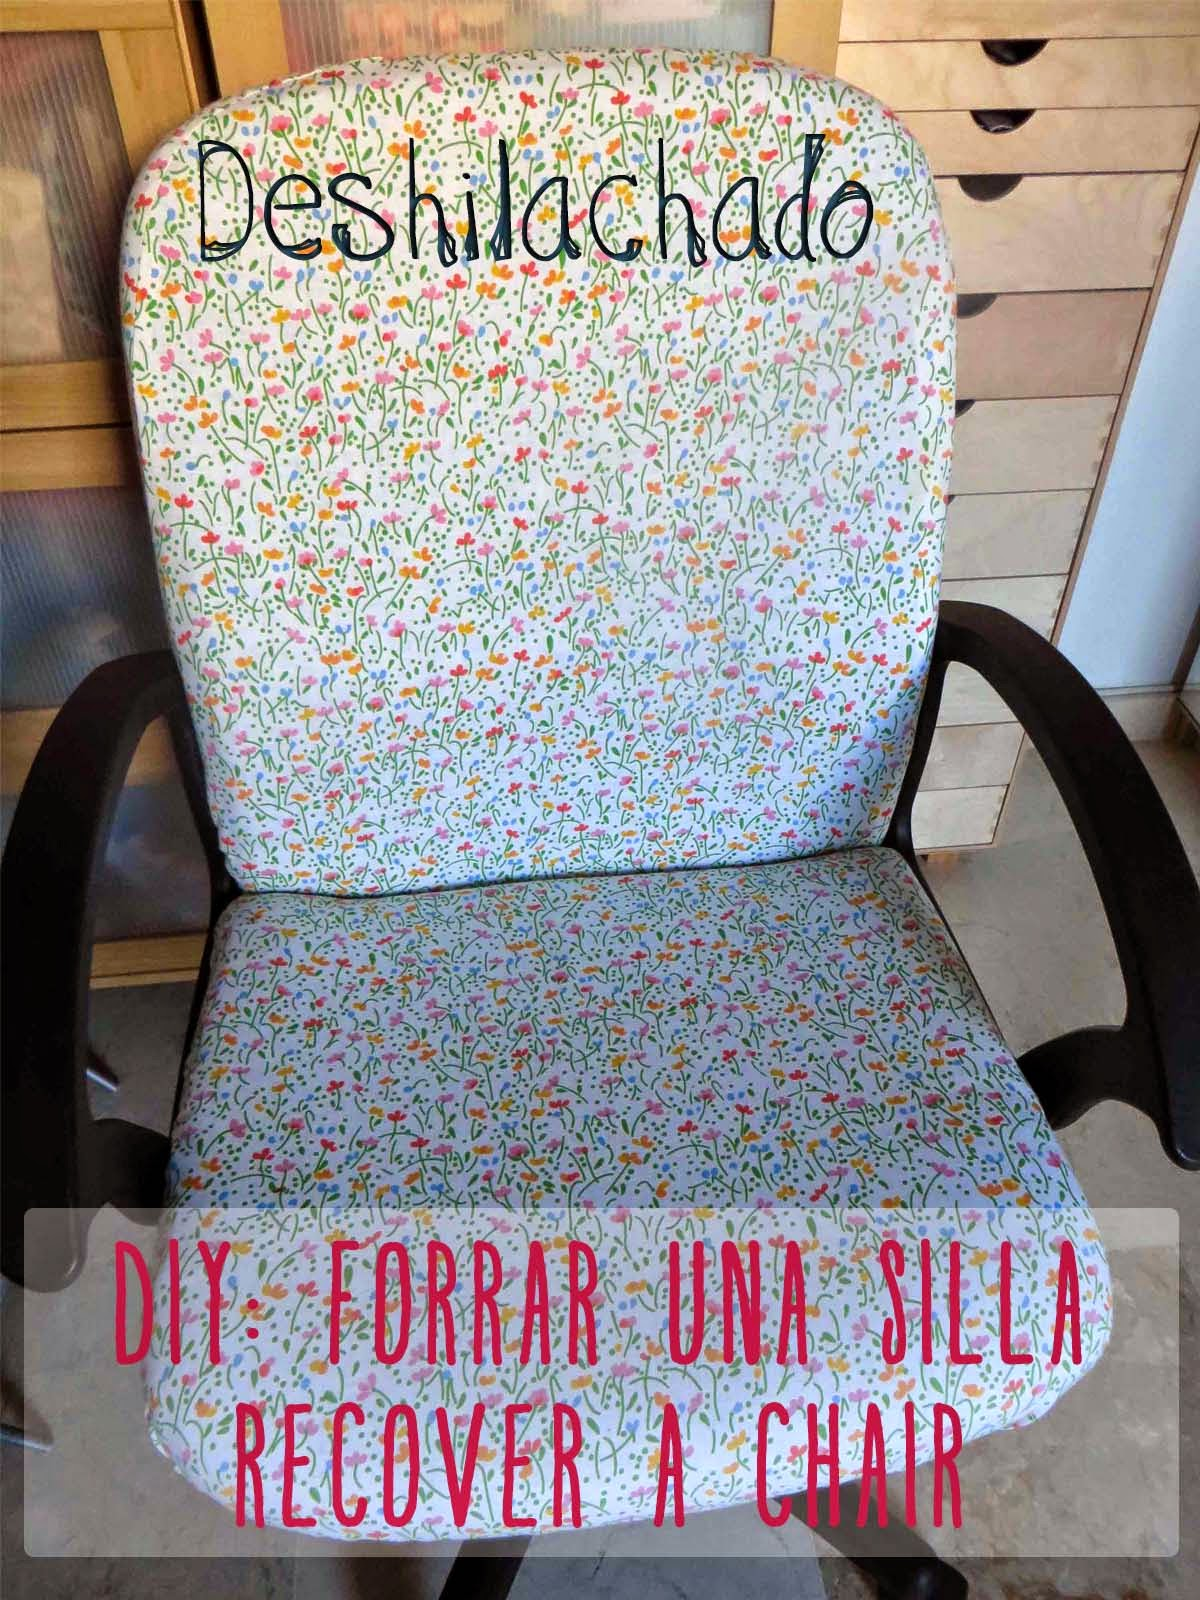 chair 1 2 nichols and stone rocking deshilachado: tutorial: forrar una vieja silla / recover an old